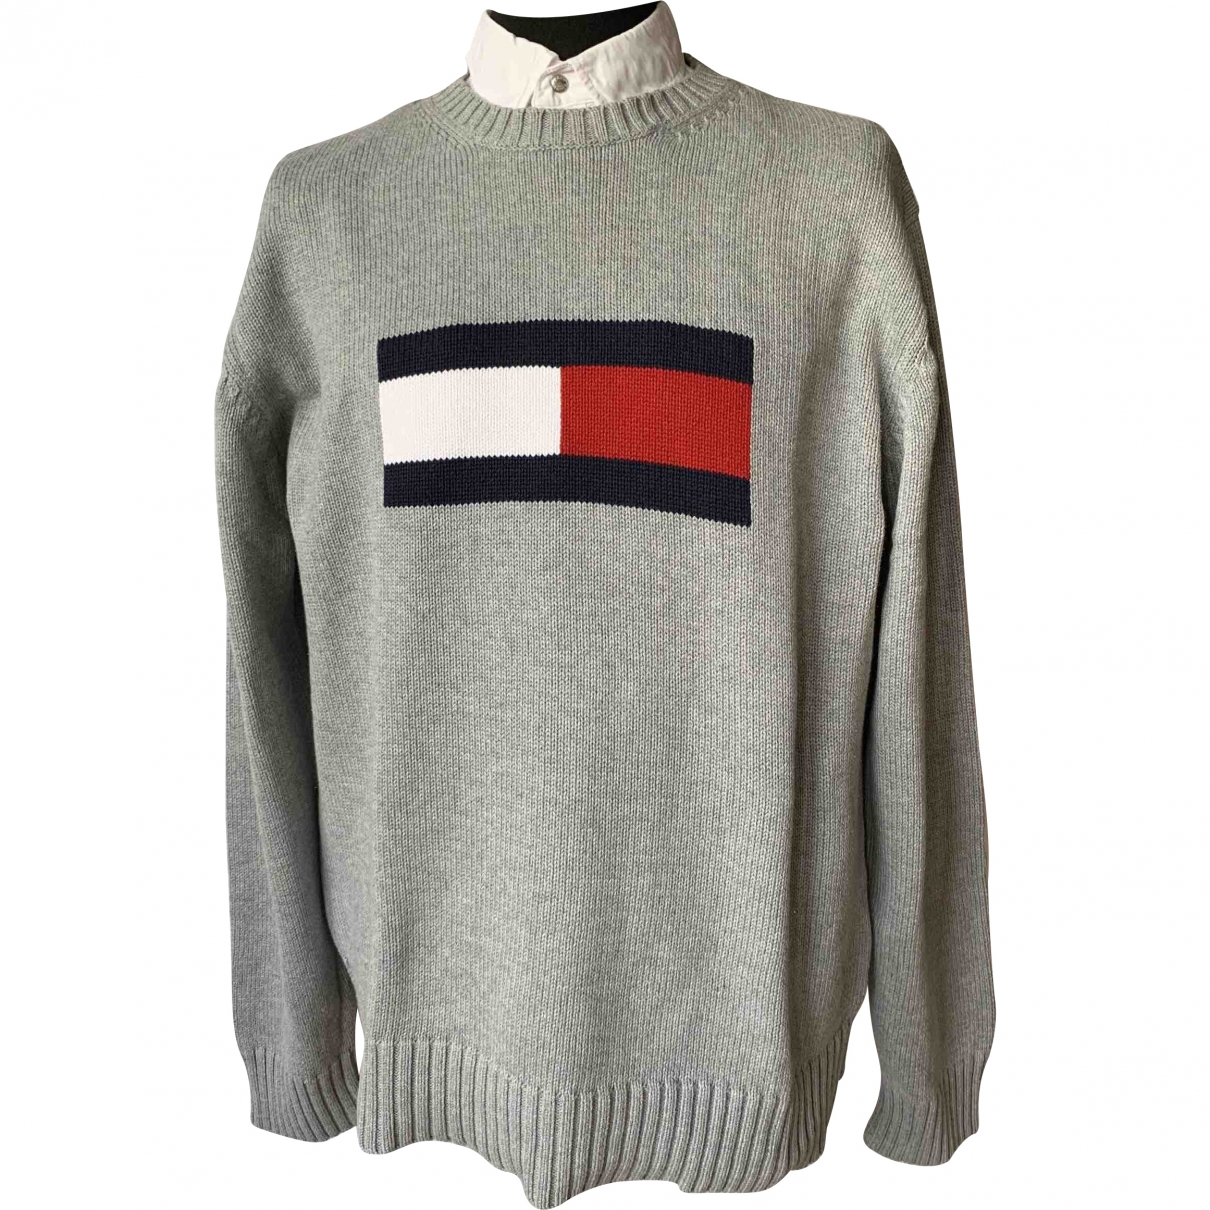 Tommy Hilfiger \N Grey Cotton Knitwear & Sweatshirts for Men XL International